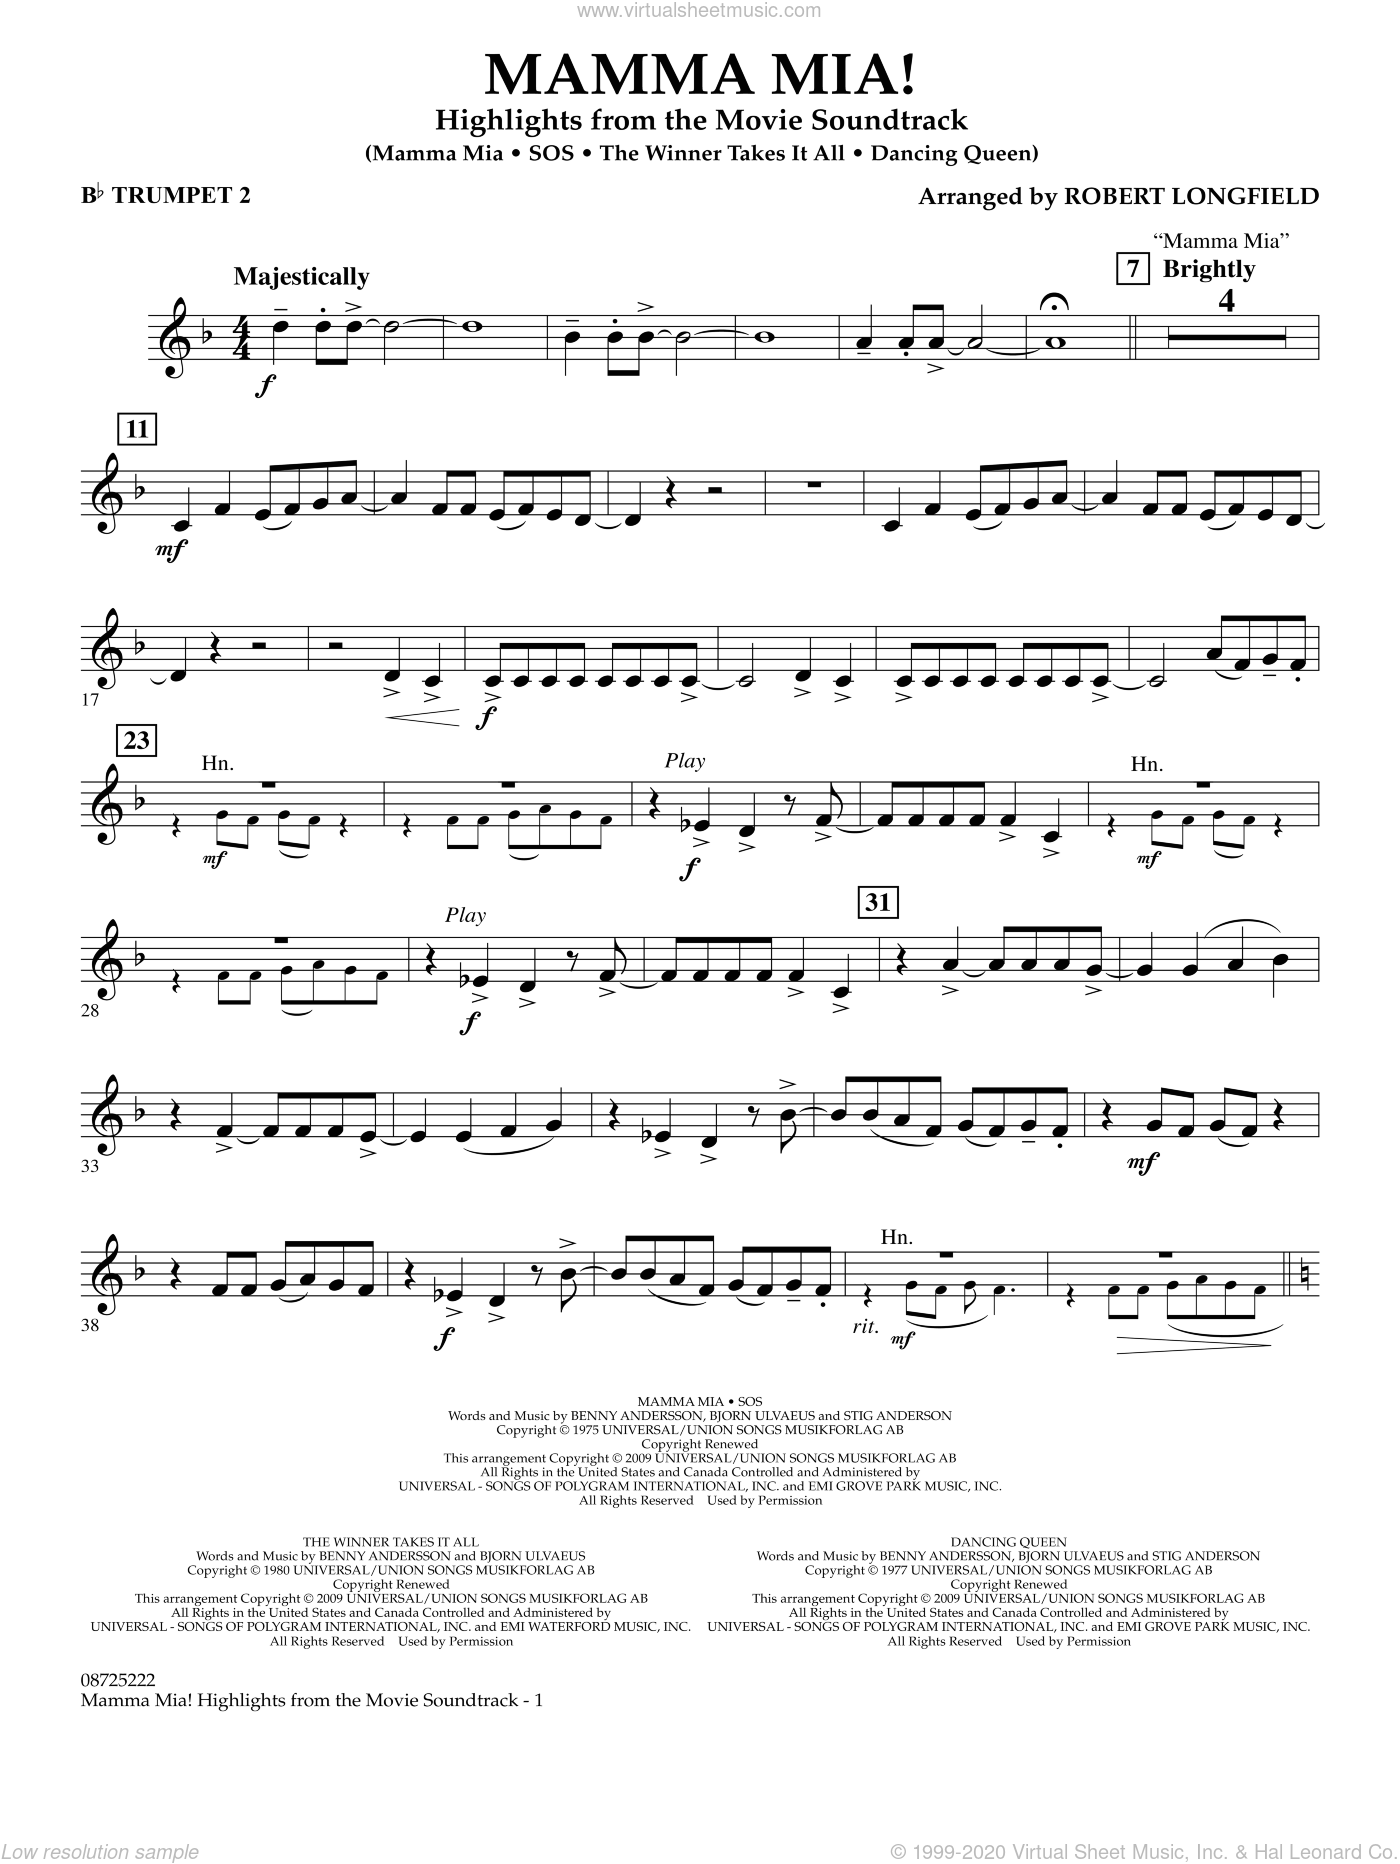 Mamma Mia!, highlights from the movie soundtrack sheet music for concert band (Bb trumpet 2) by Robert Longfield and ABBA. Score Image Preview.